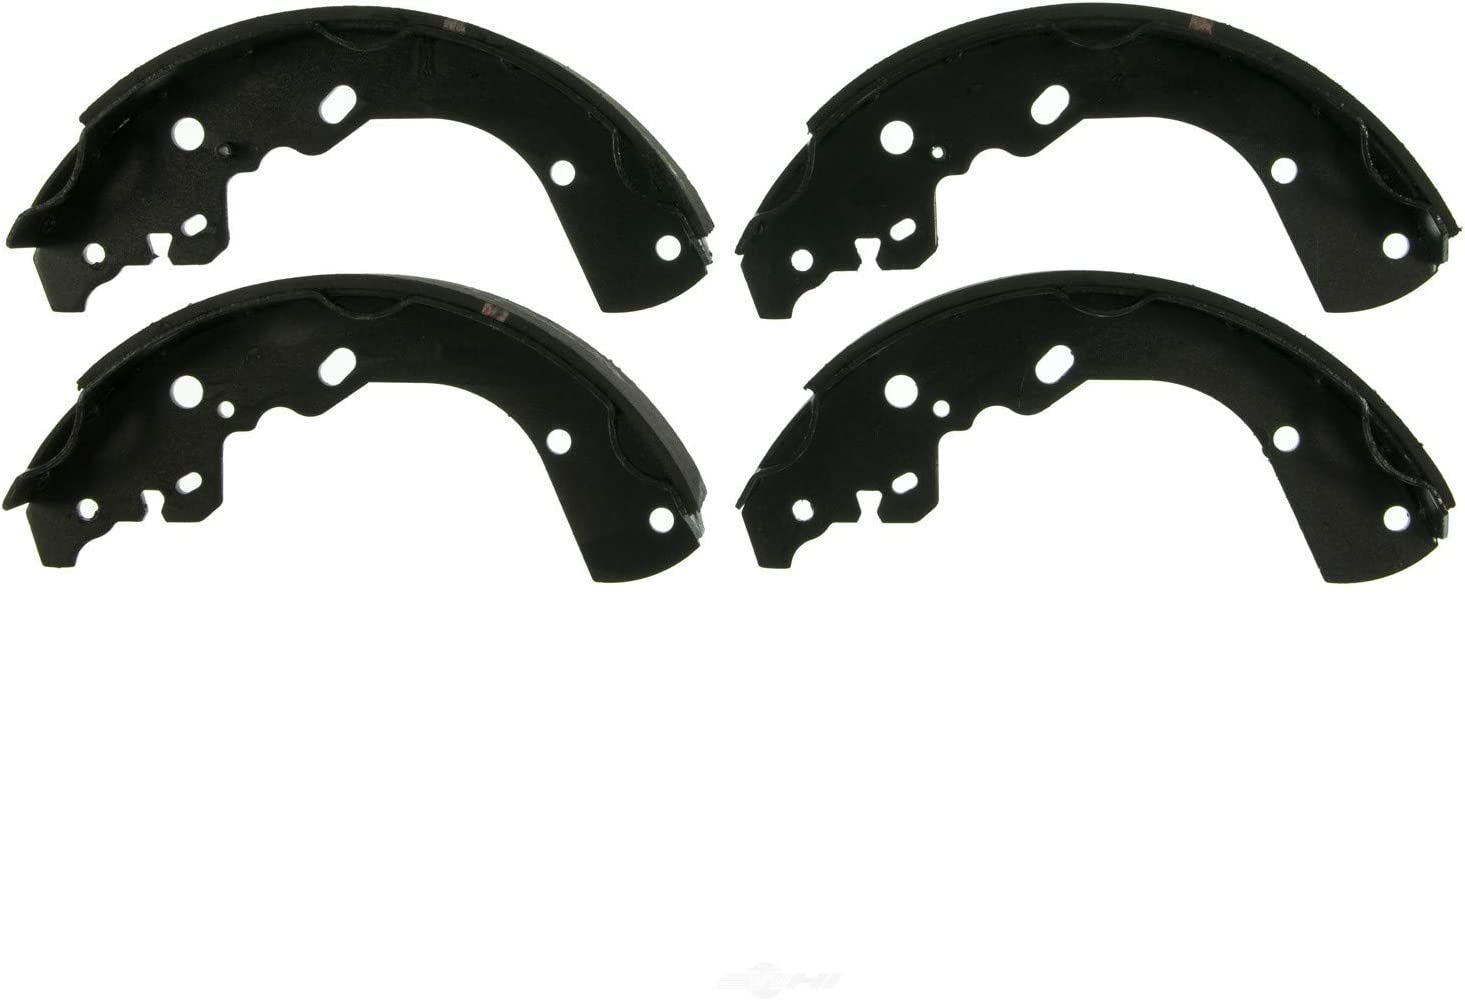 AutoDN REAR Drum Brake Shoe Set Compatible With CHEVROLET SILVERADO 1500 2005 2006 2007 2008